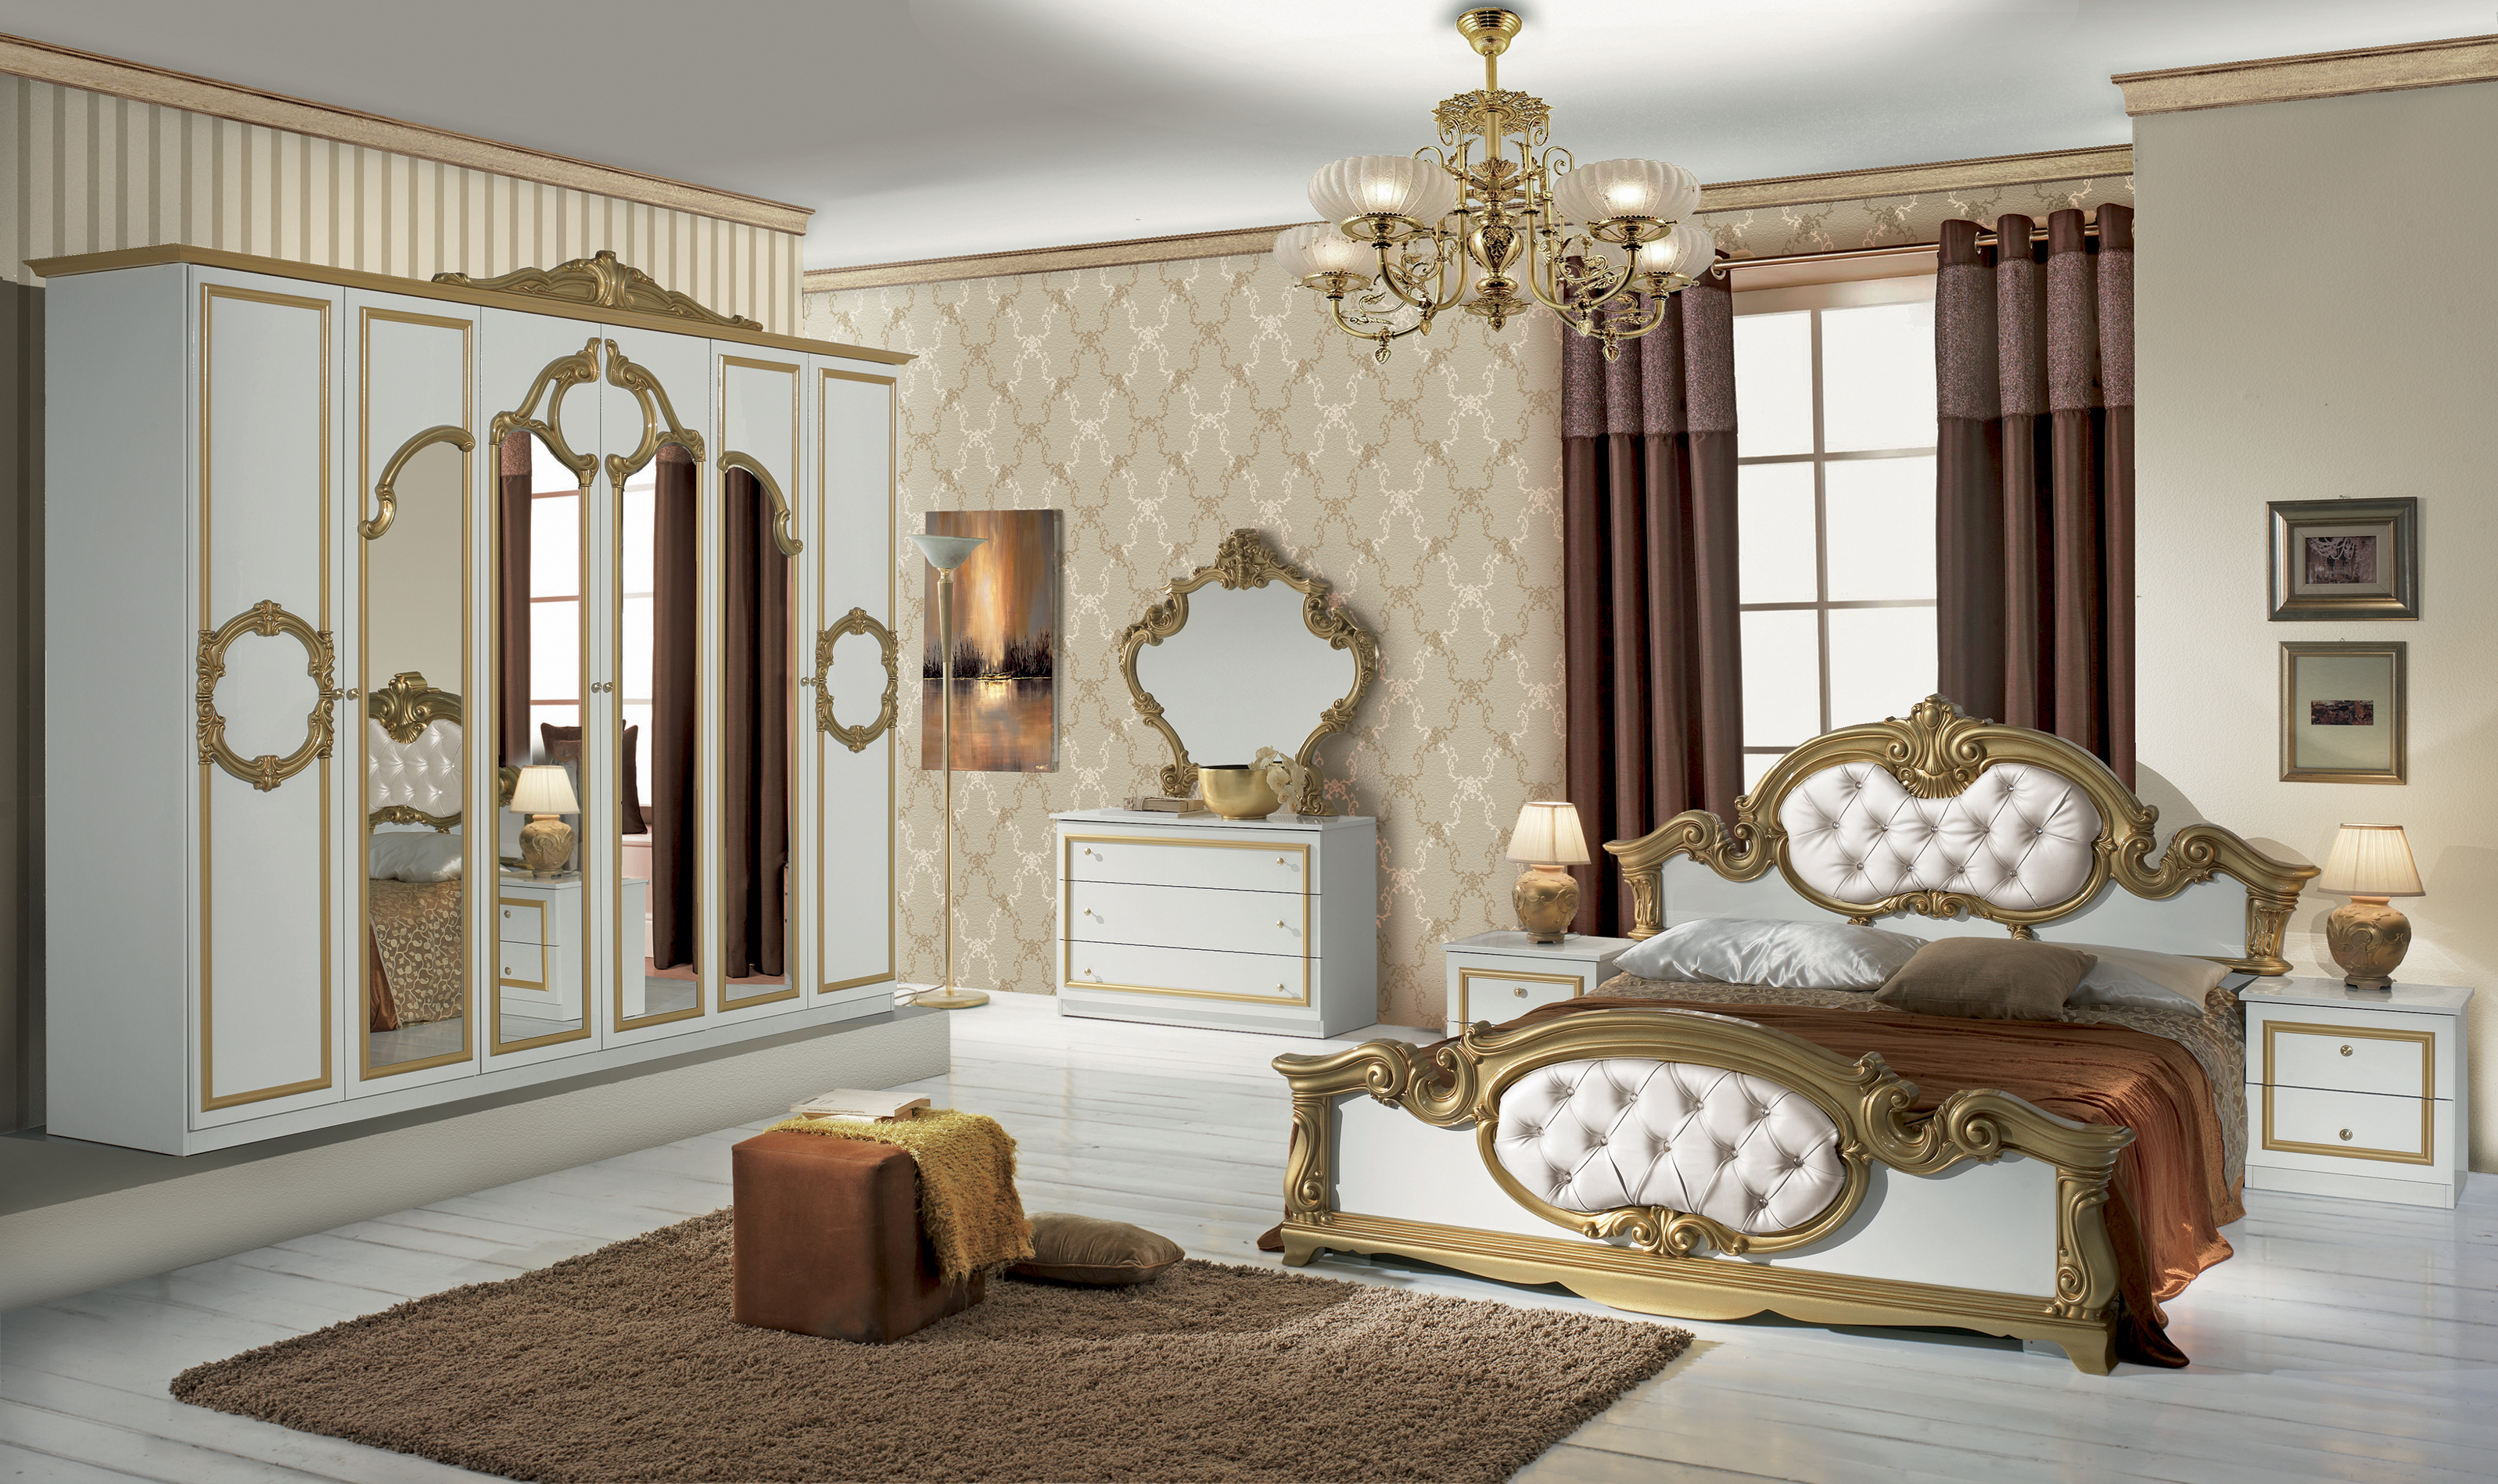 barock schlafzimmer elegantes schlafzimmer luxus. Black Bedroom Furniture Sets. Home Design Ideas